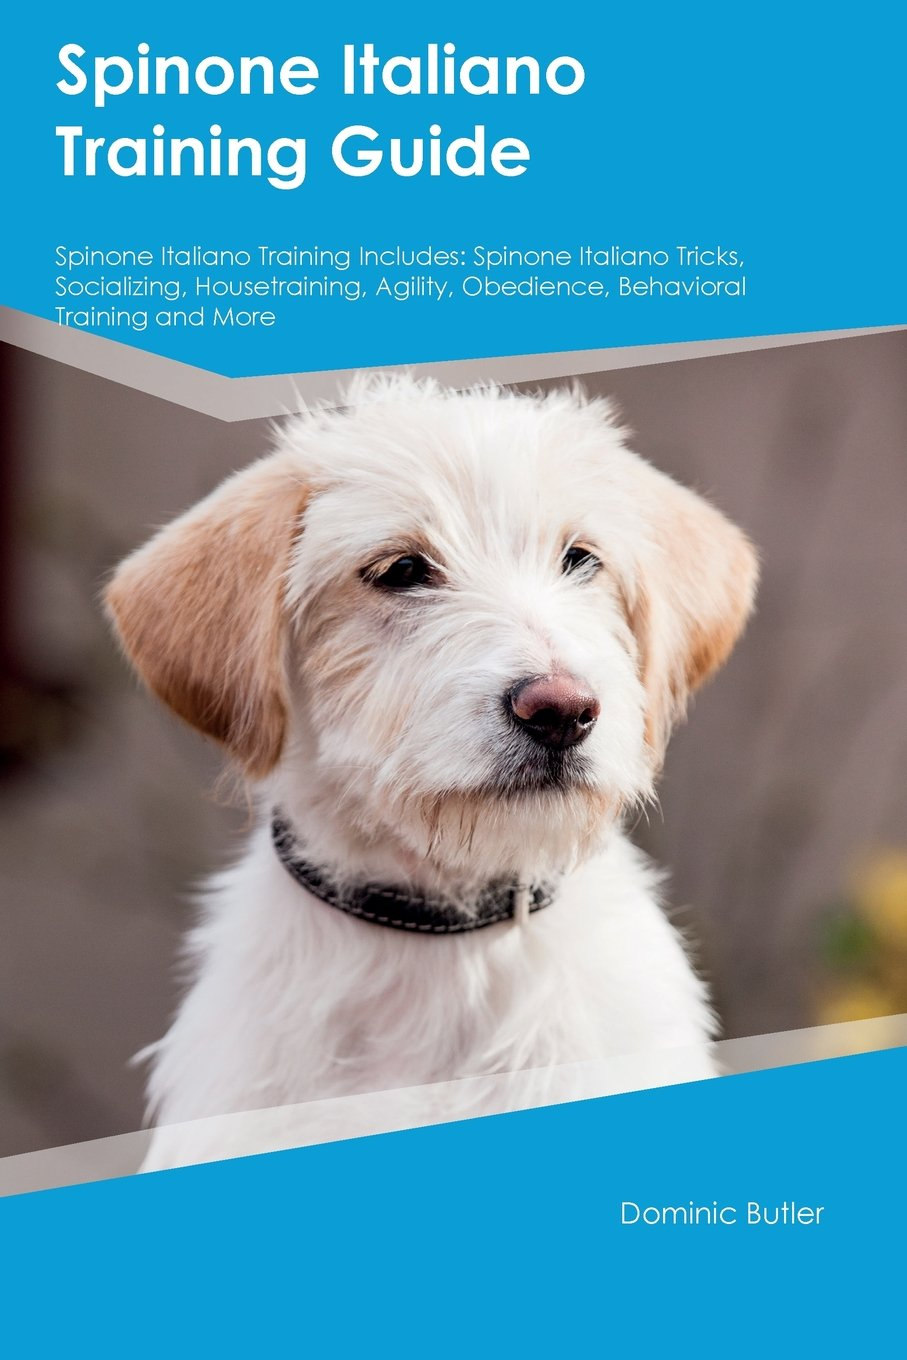 Download Spinone Italiano Training Guide Spinone Italiano Training Includes: Spinone Italiano Tricks, Socializing, Housetraining, Agility, Obedience, Behavioral Training and More PDF